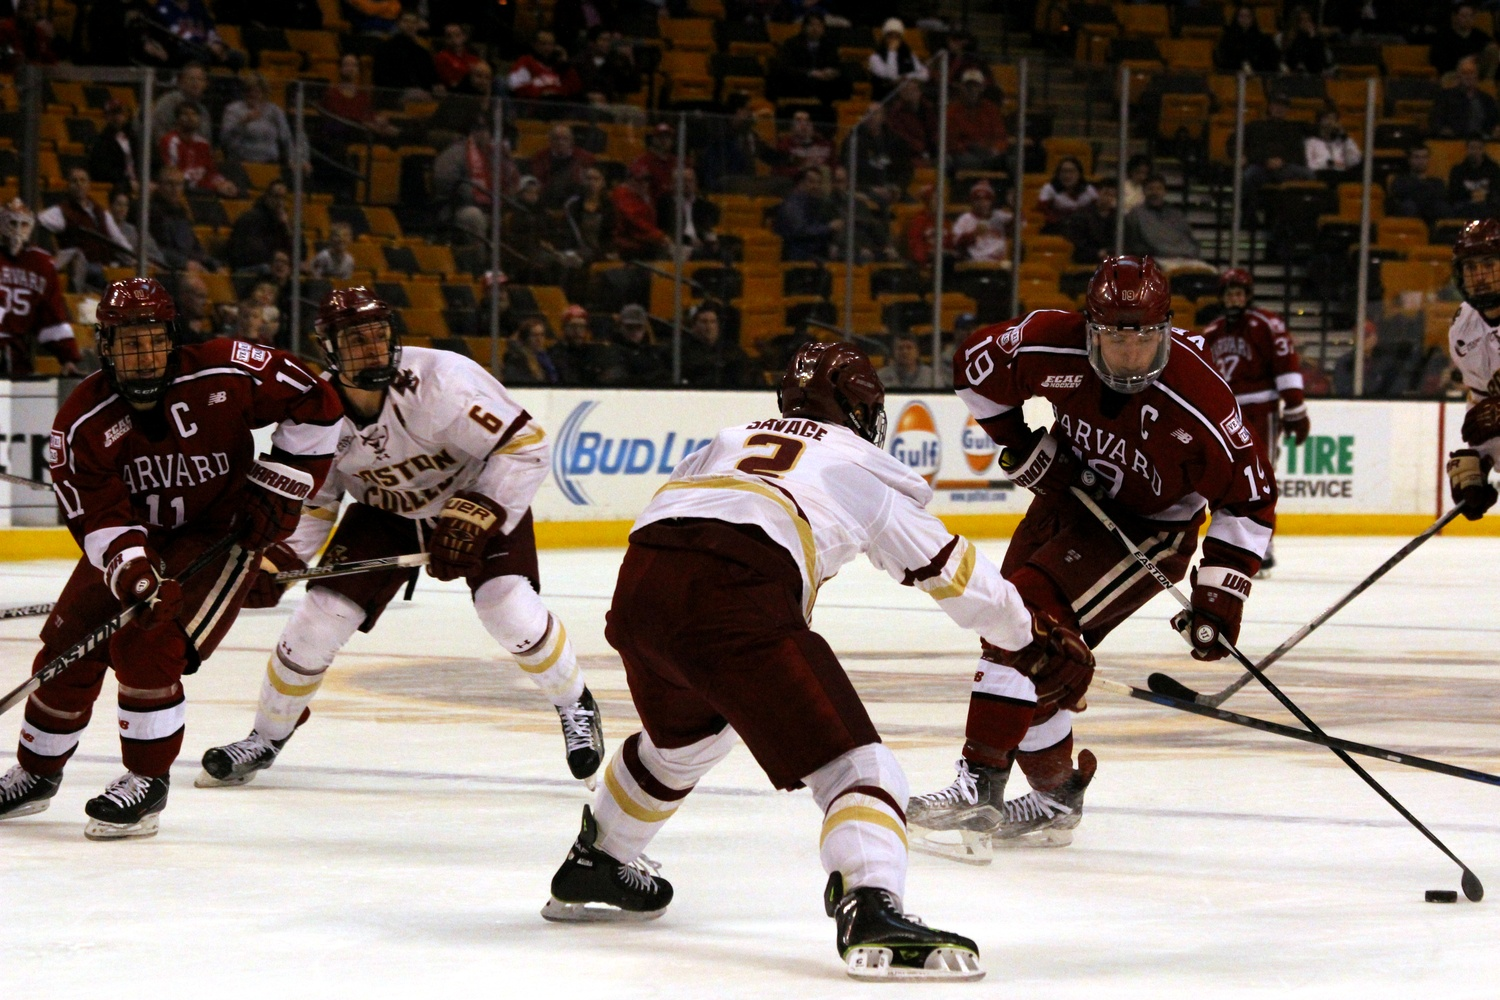 Co-captains Jimmy Vesey (19) and Kyle Criscuolo (11), shown in action against BC during this year's Beanpot, will look to notch their first career NCAA tournament win Friday night against the Eagles.